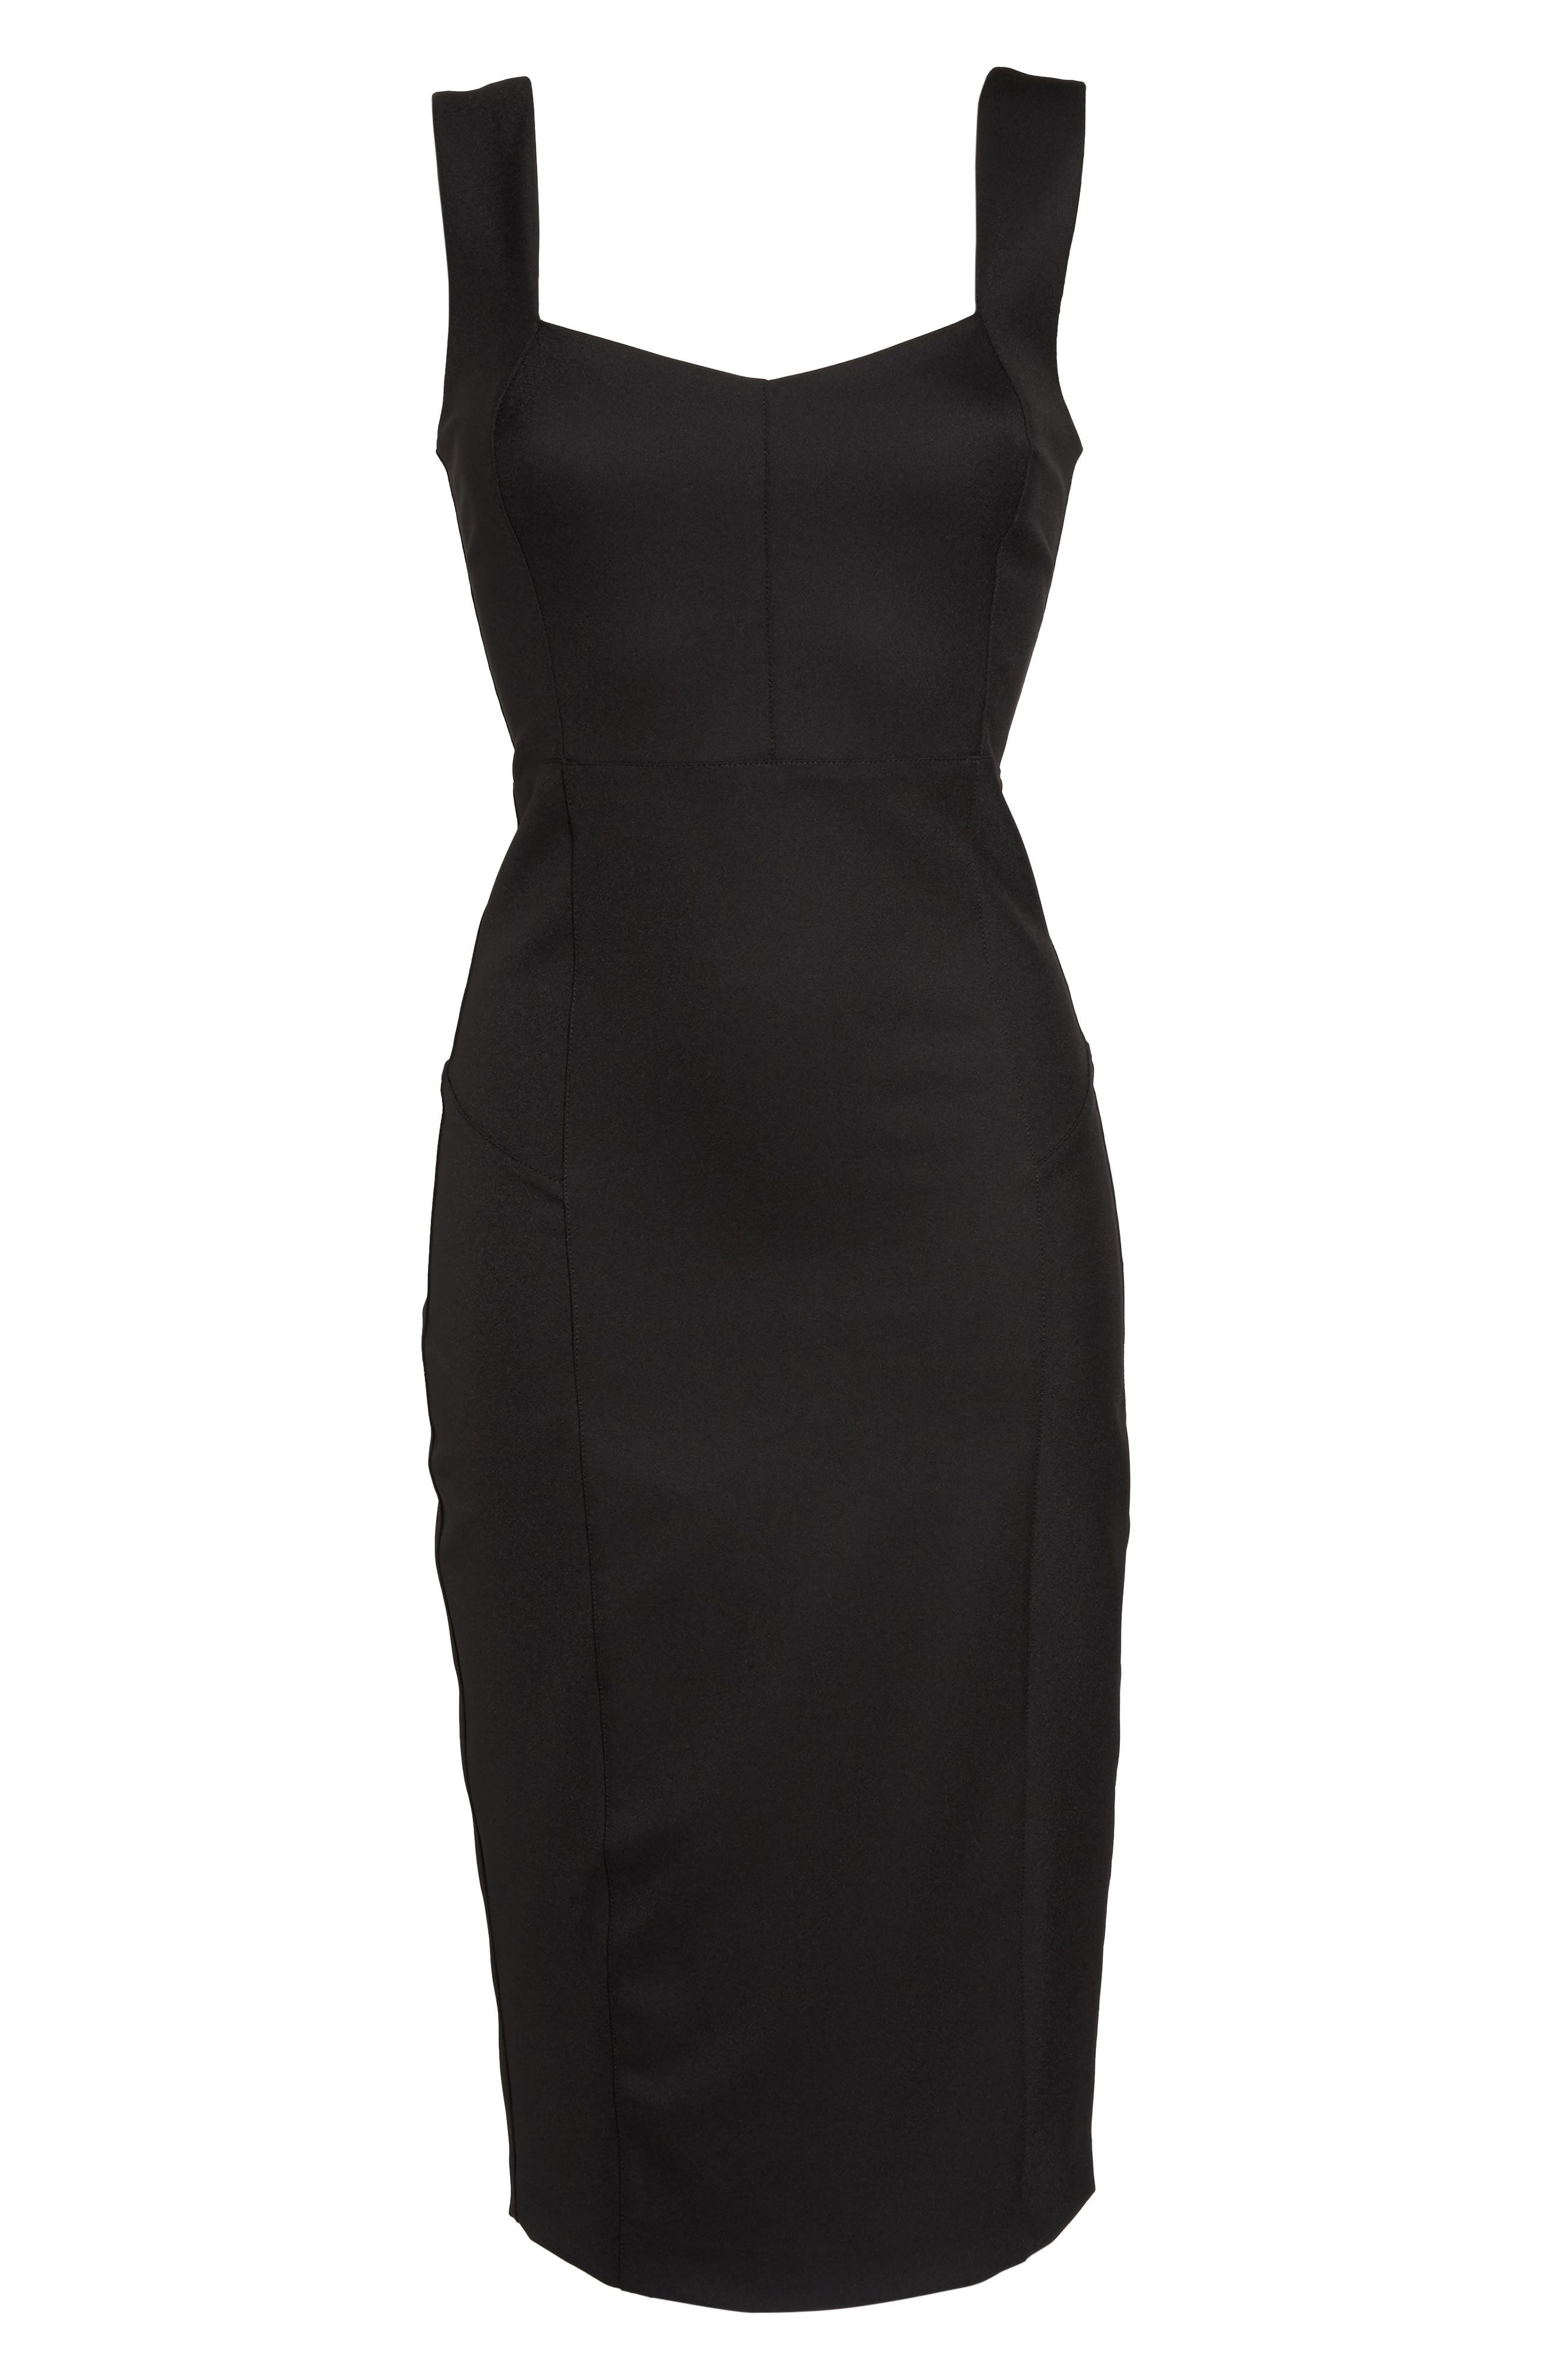 FELICITY & COCO,                             Mirren Midi Body-Con Dress,                             Alternate thumbnail 6, color,                             001